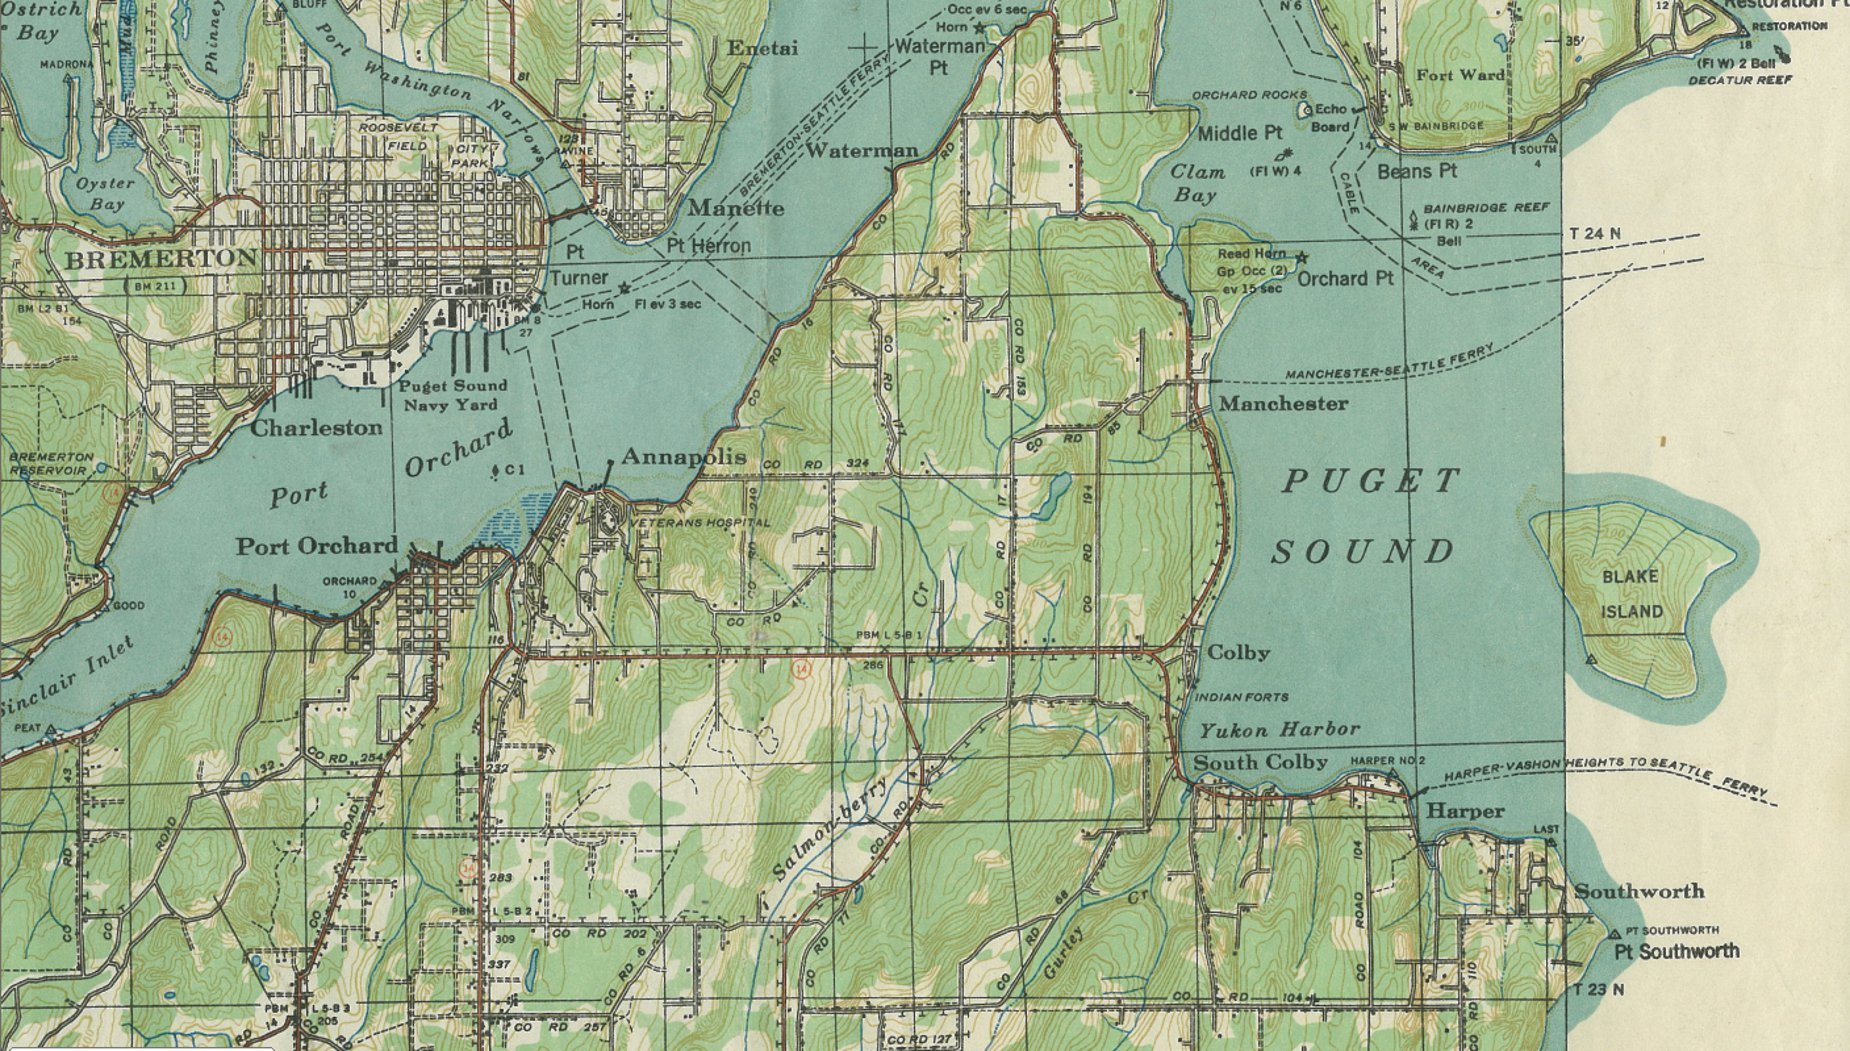 Historical Maps Documents Lists The Yukon Harbor Historical - Us ww2 map